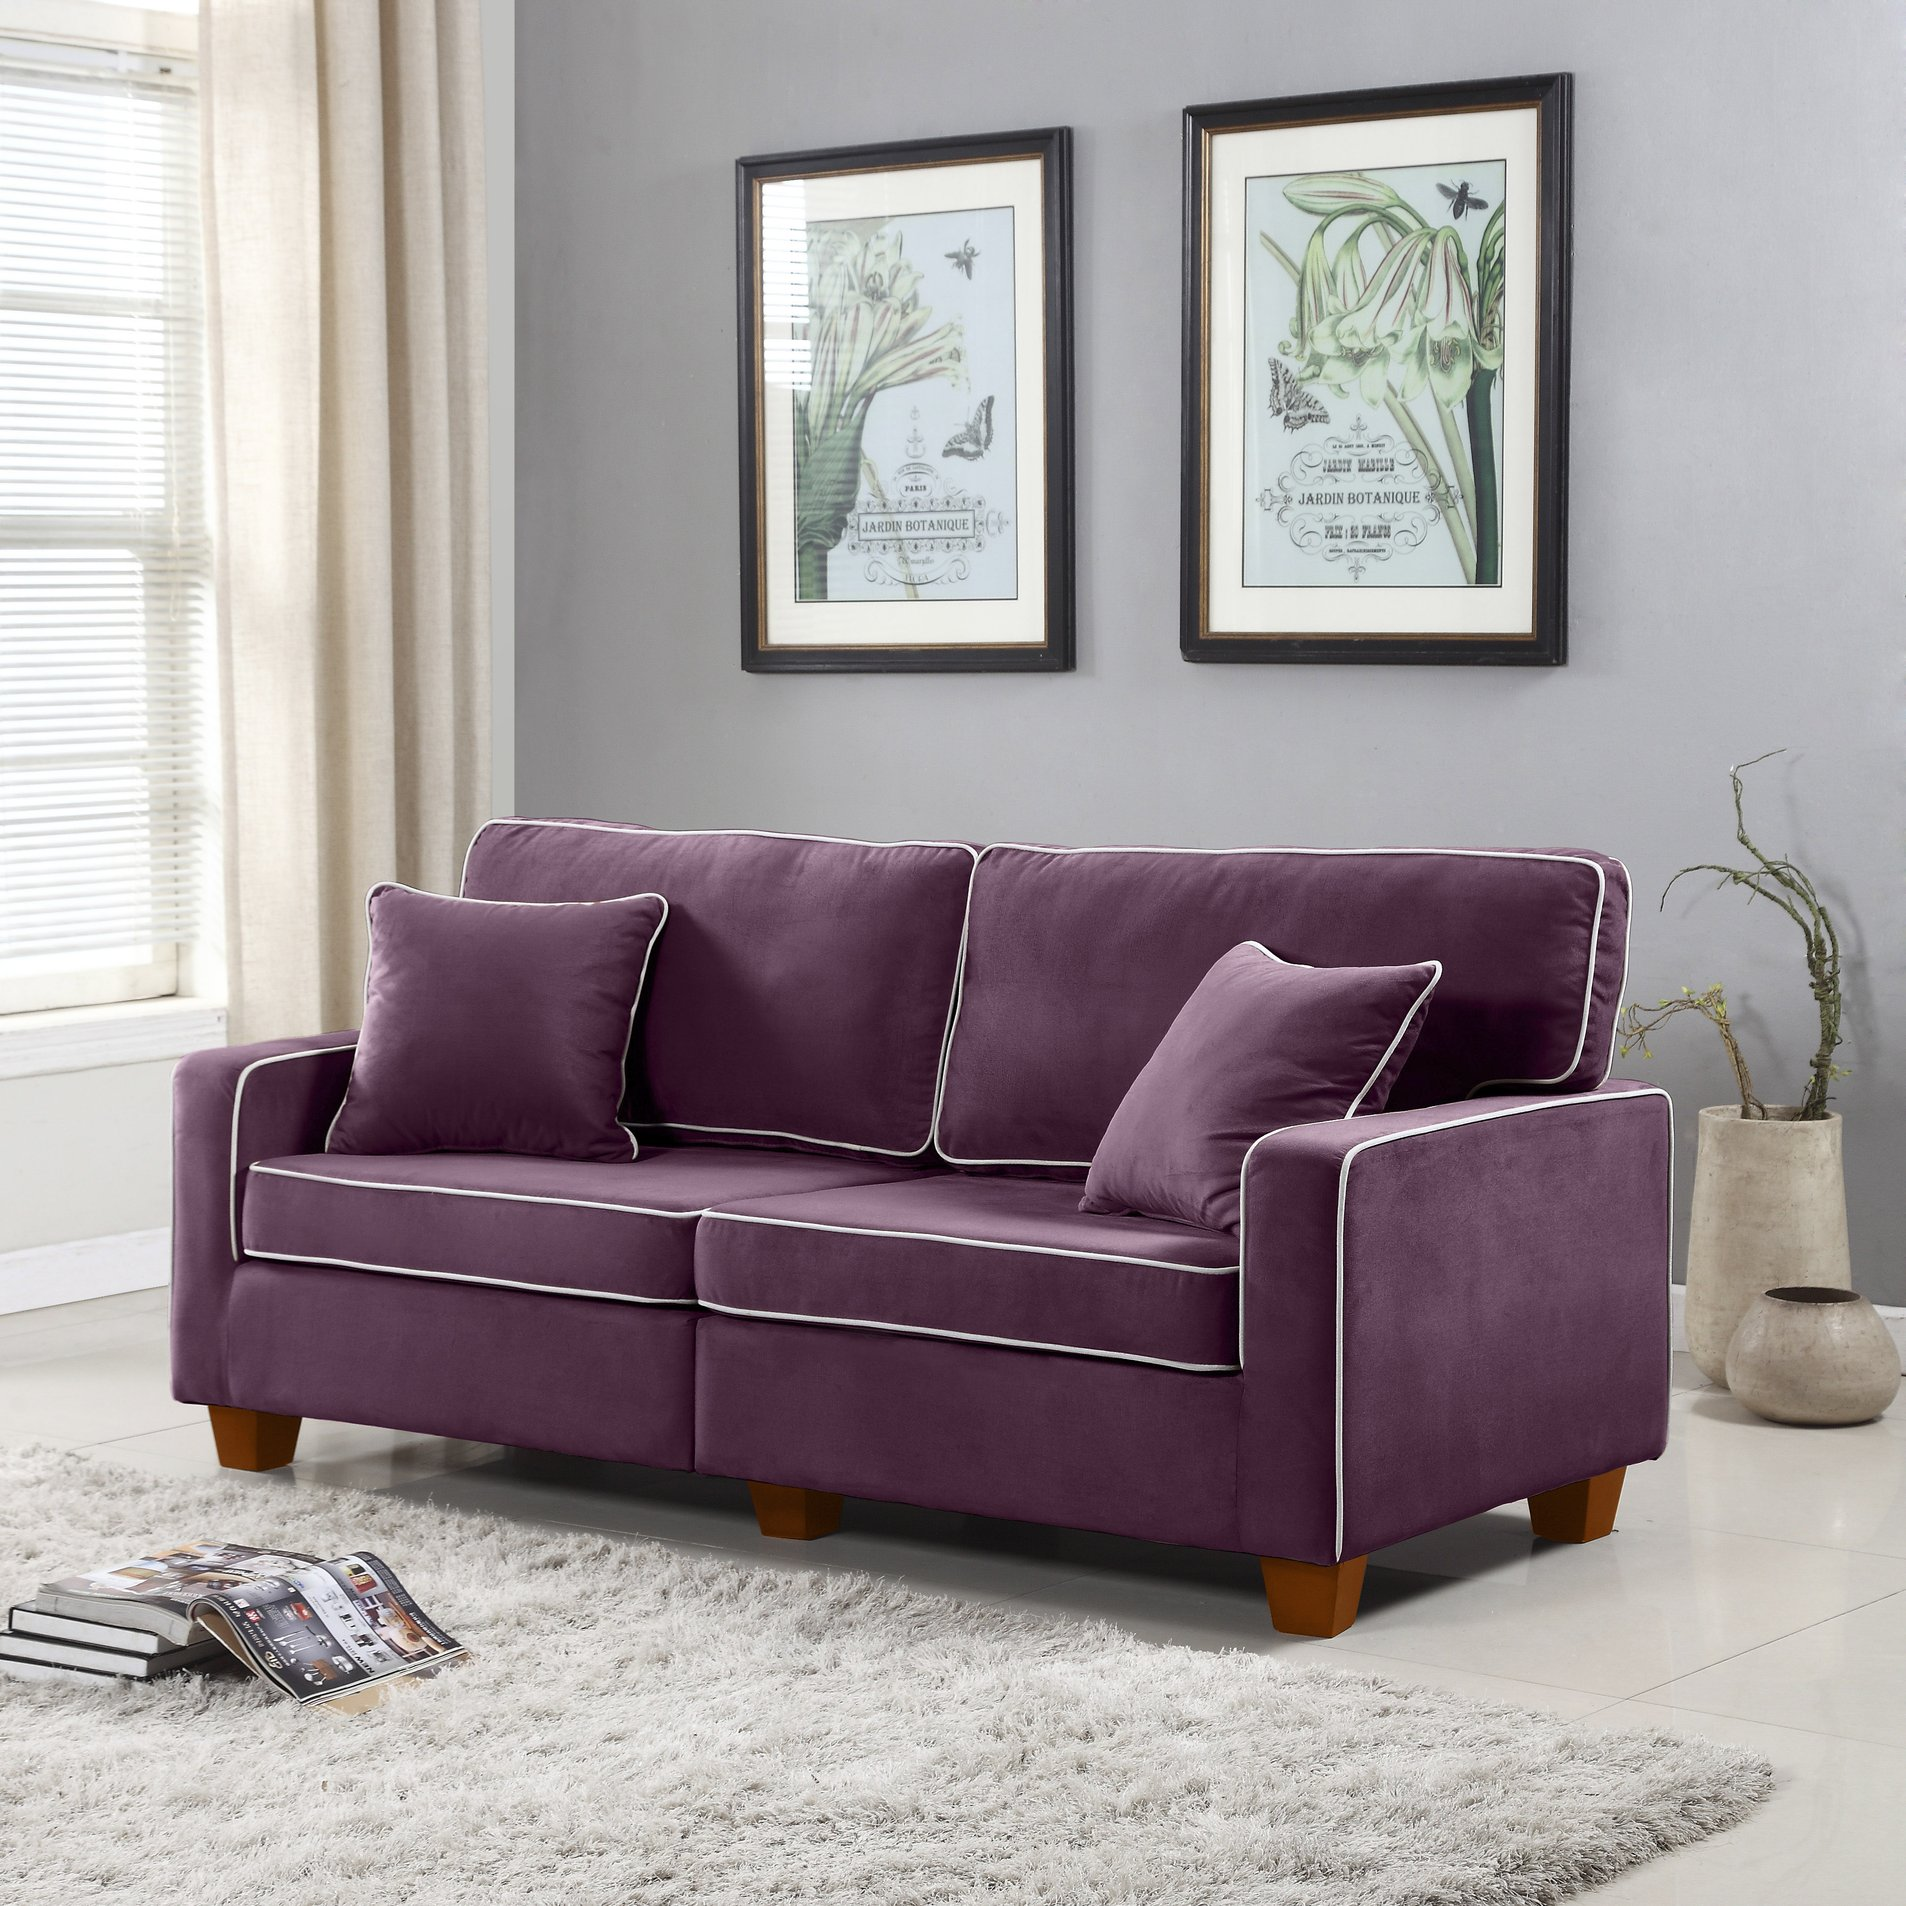 Astounding Details About Modern Two Tone Velvet Fabric Living Room Loveseat Sofa Wooden Legs Purple Lamtechconsult Wood Chair Design Ideas Lamtechconsultcom